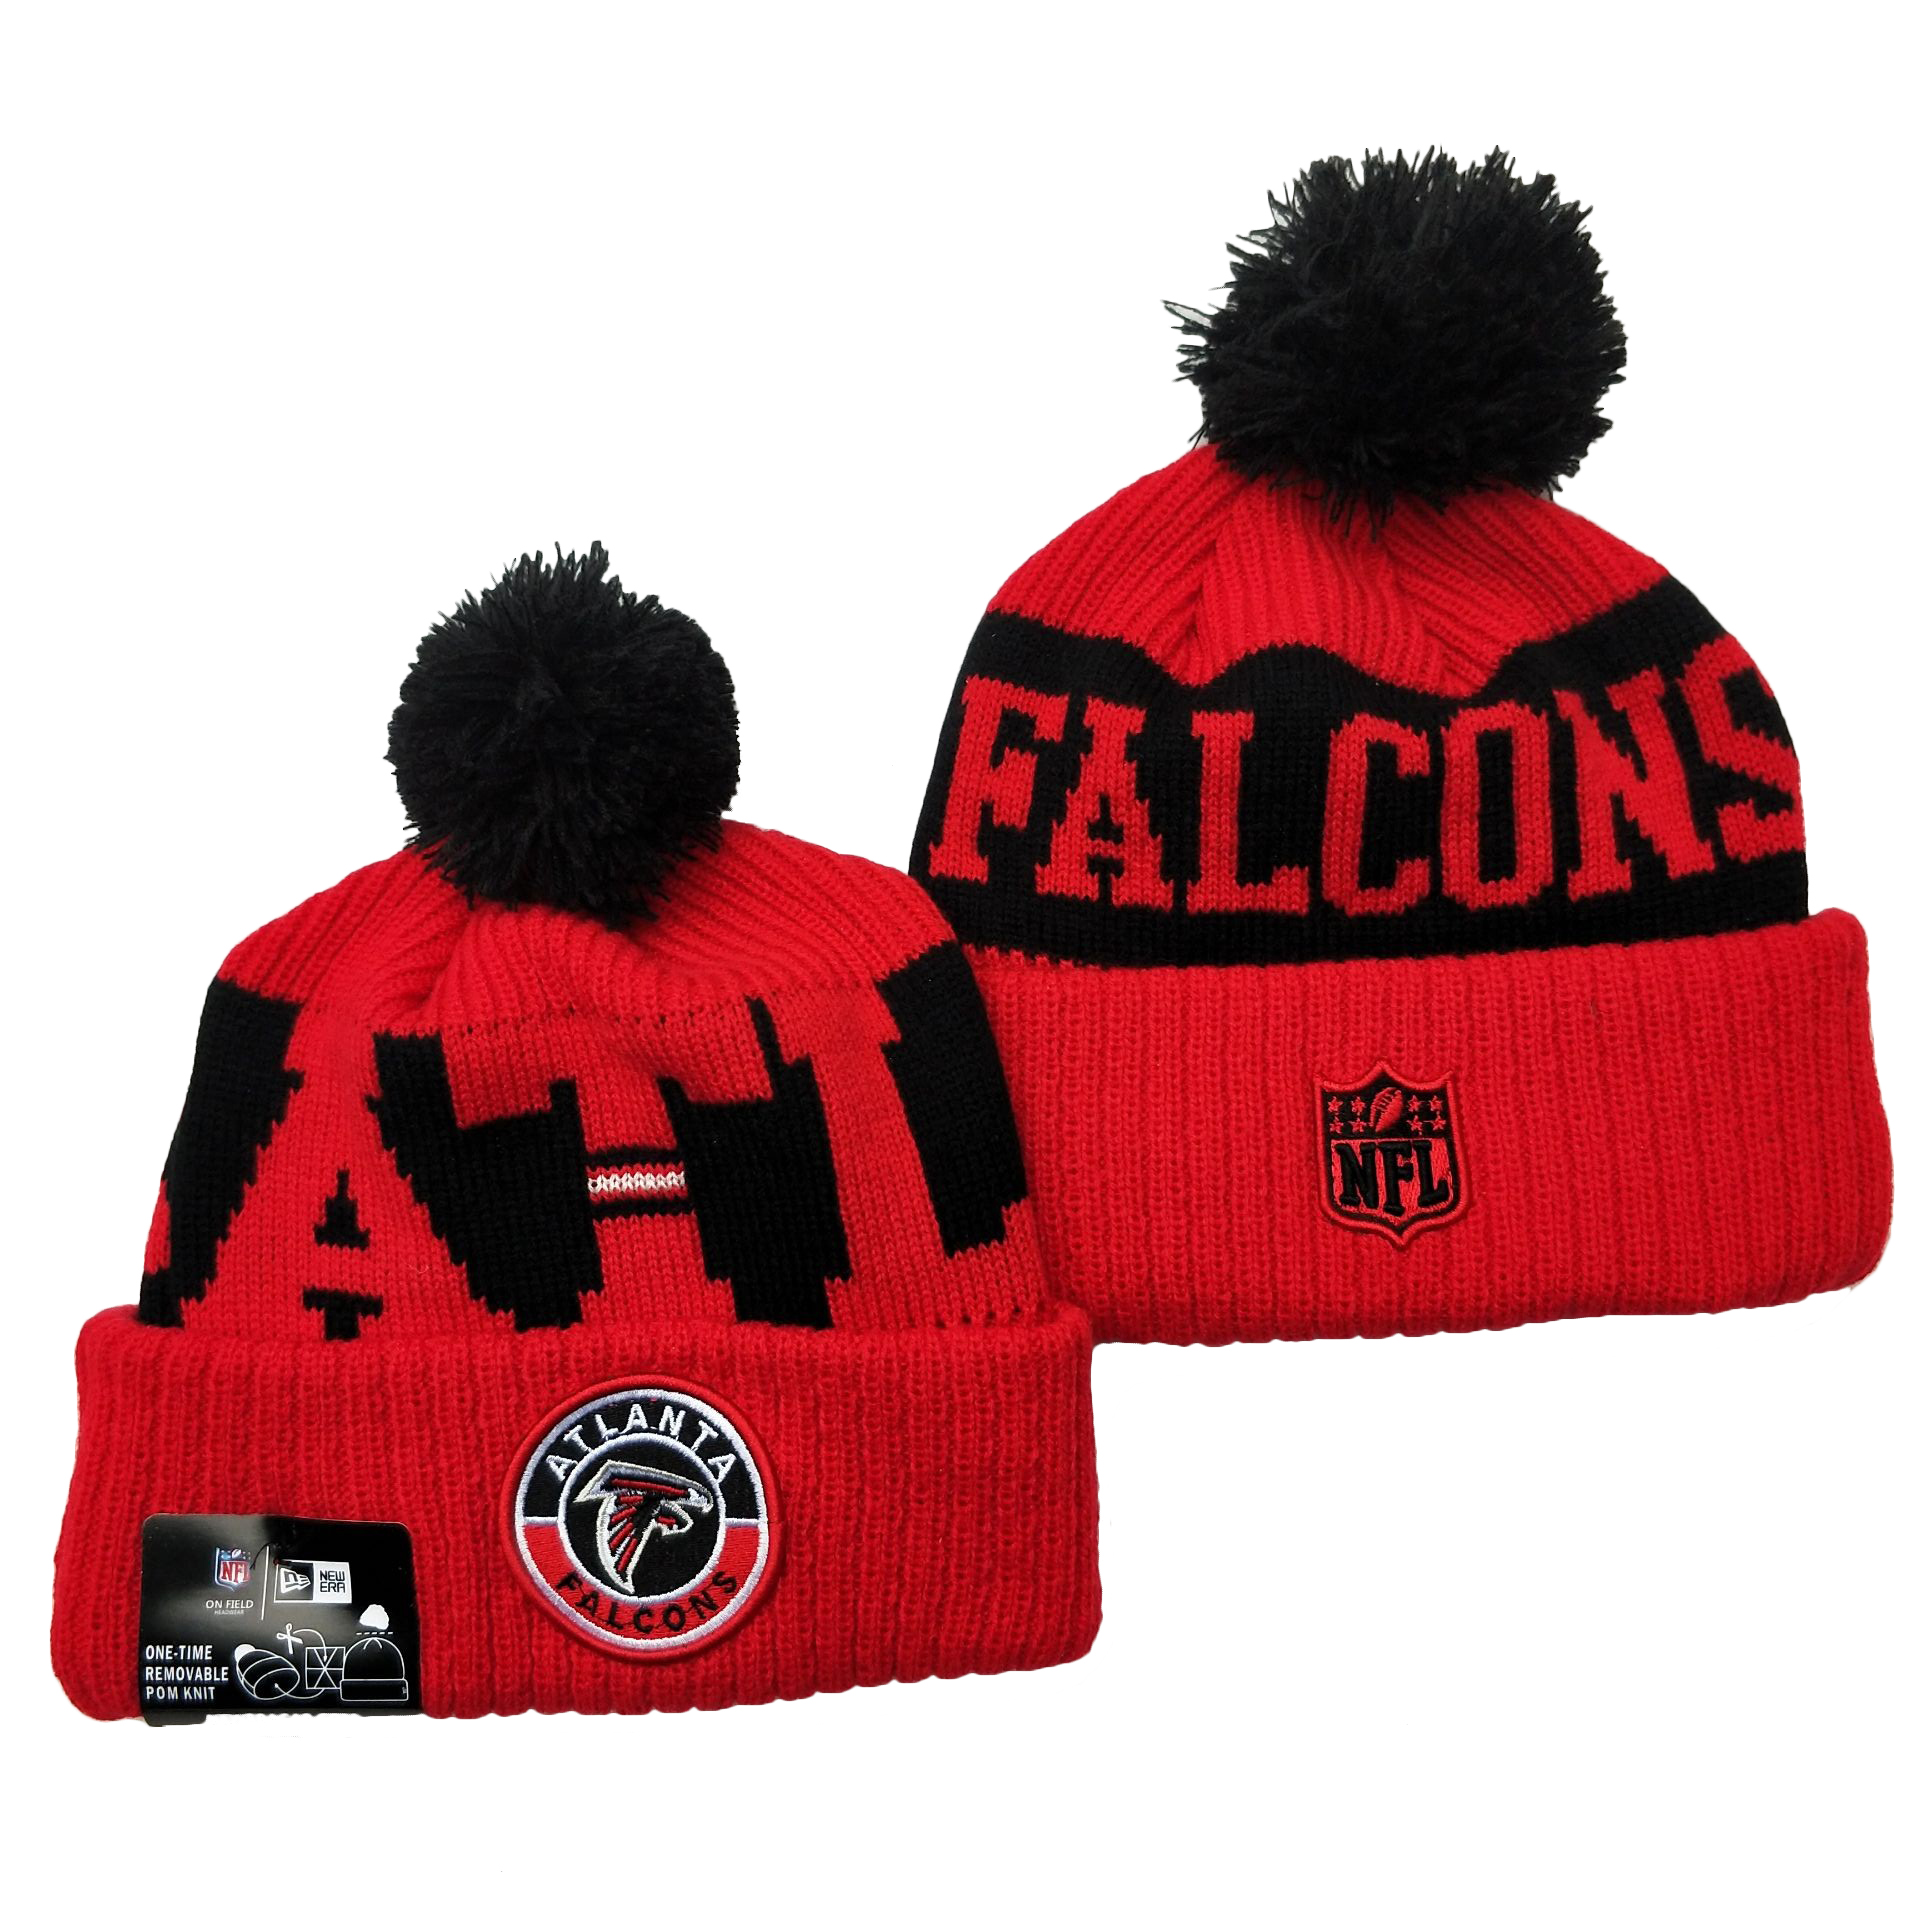 Falcons Team Logo Red 2020 NFL Sideline Pom Cuffed Knit Hat YD